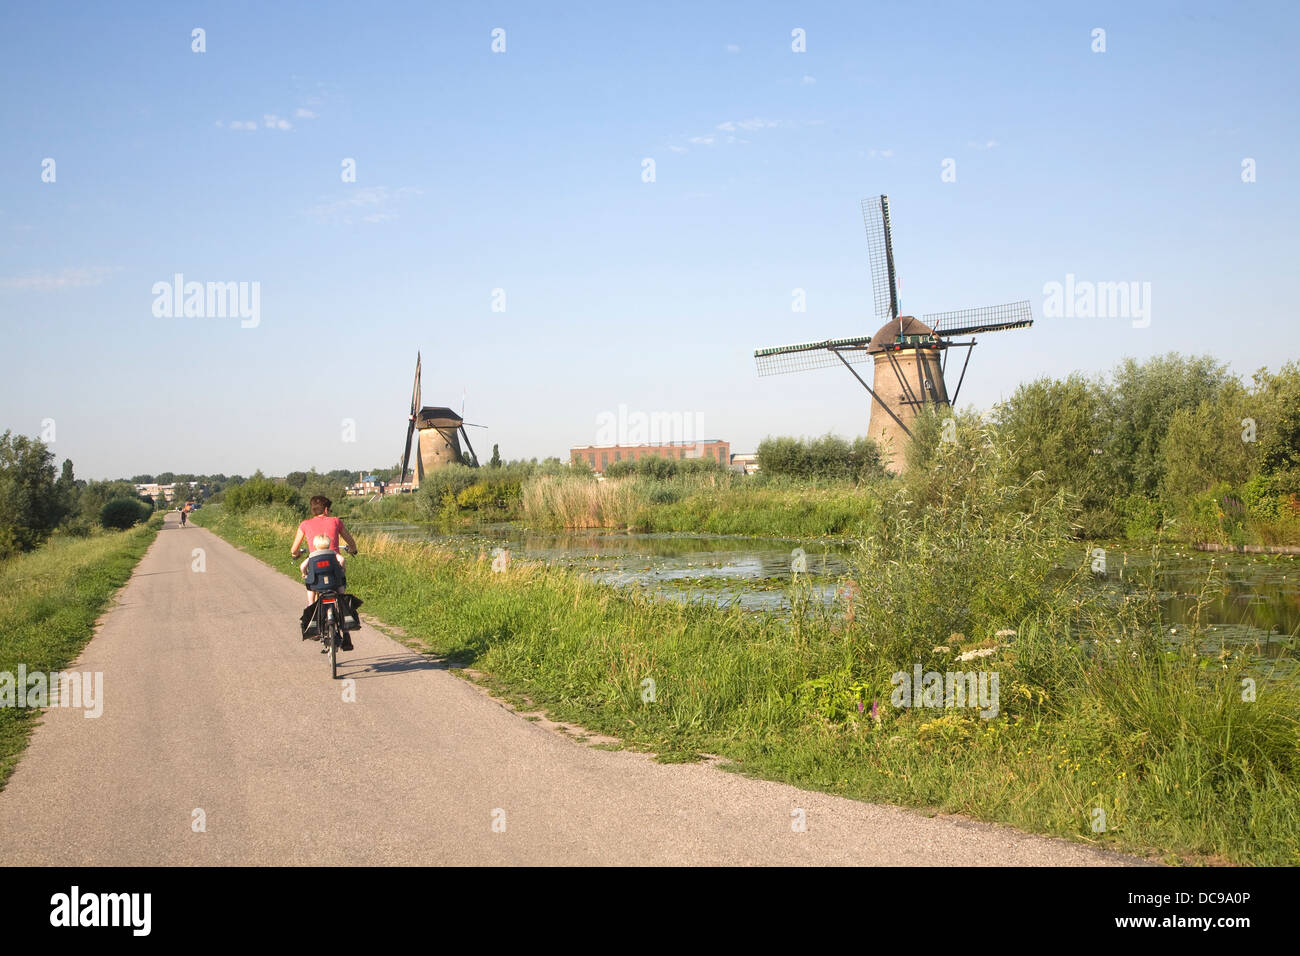 Traditional Dutch windmills Kinderdijk Netherlands cyclist on path Stock Photo